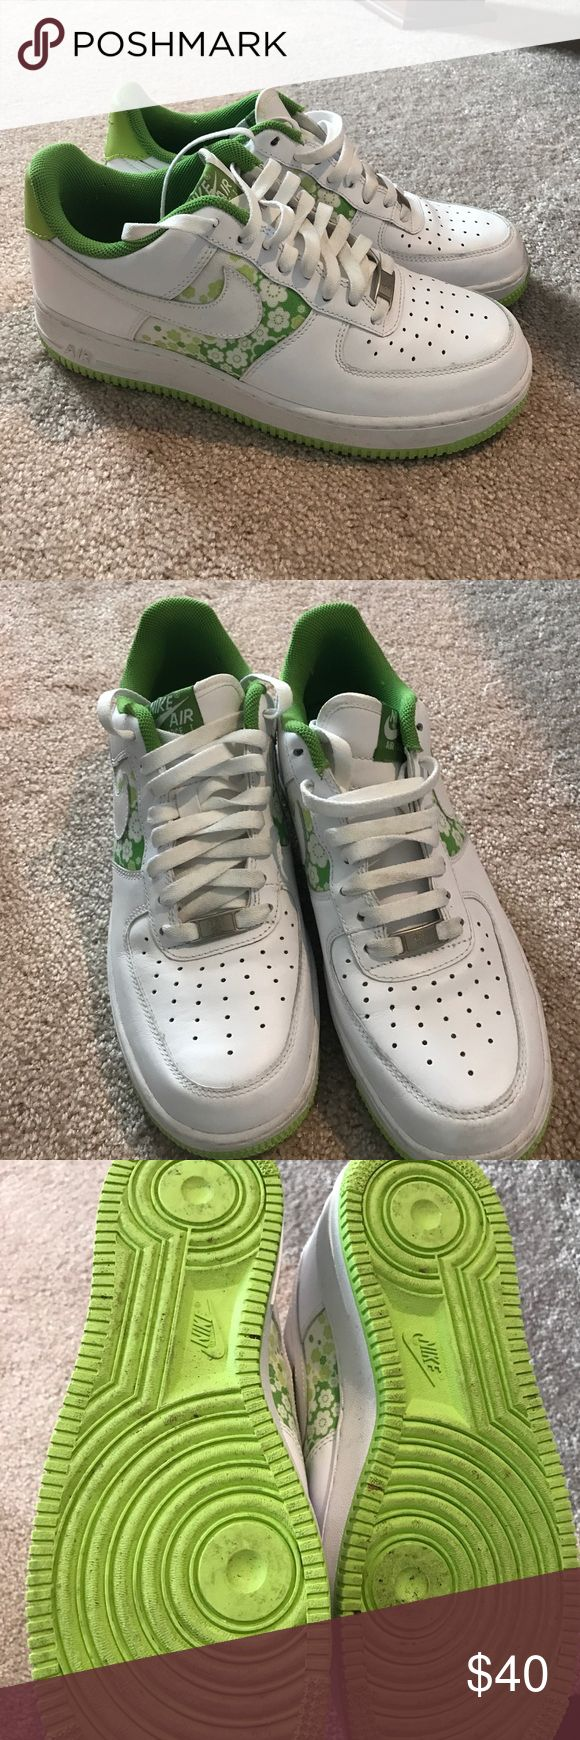 Nike Air Force 1 Nike Air Force 1. White and lime green. Worn once. Nike Shoes Sneakers